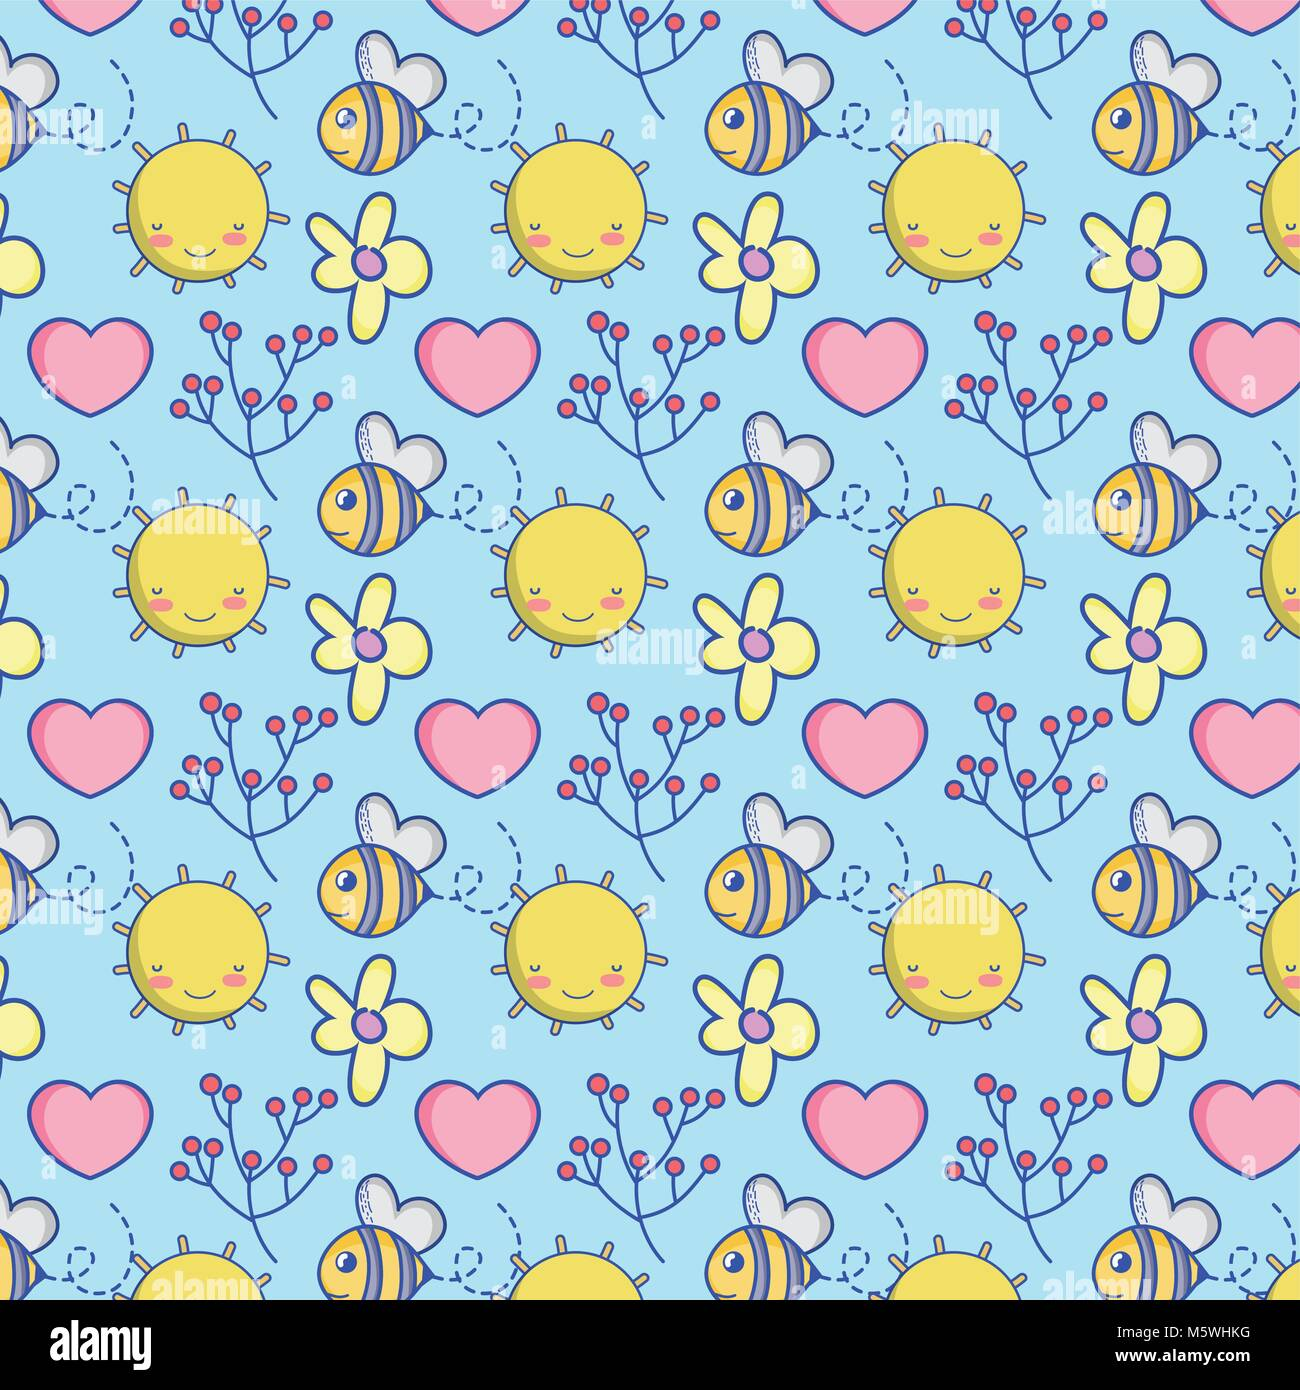 Cute Bee And Nature Pattern Background Vector Illustration Graphic